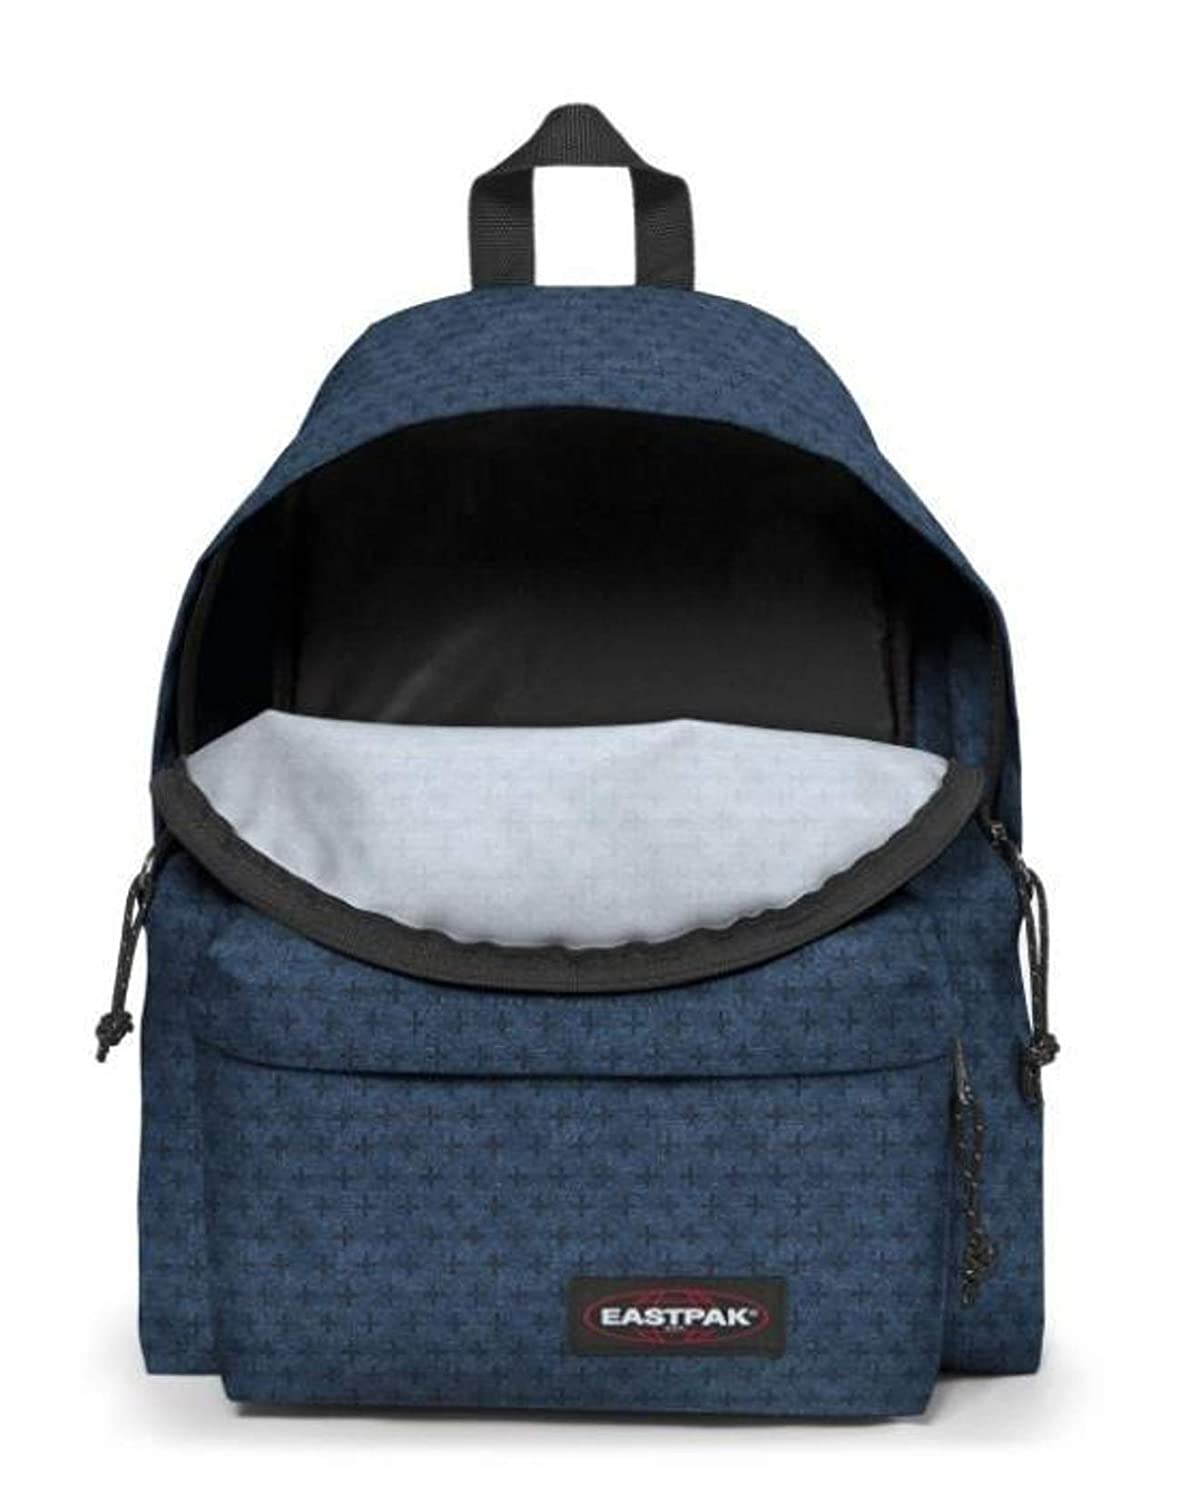 Dos Eastpak Sac CrossBagages Pak'rstitch À Padded QsxhdtrC